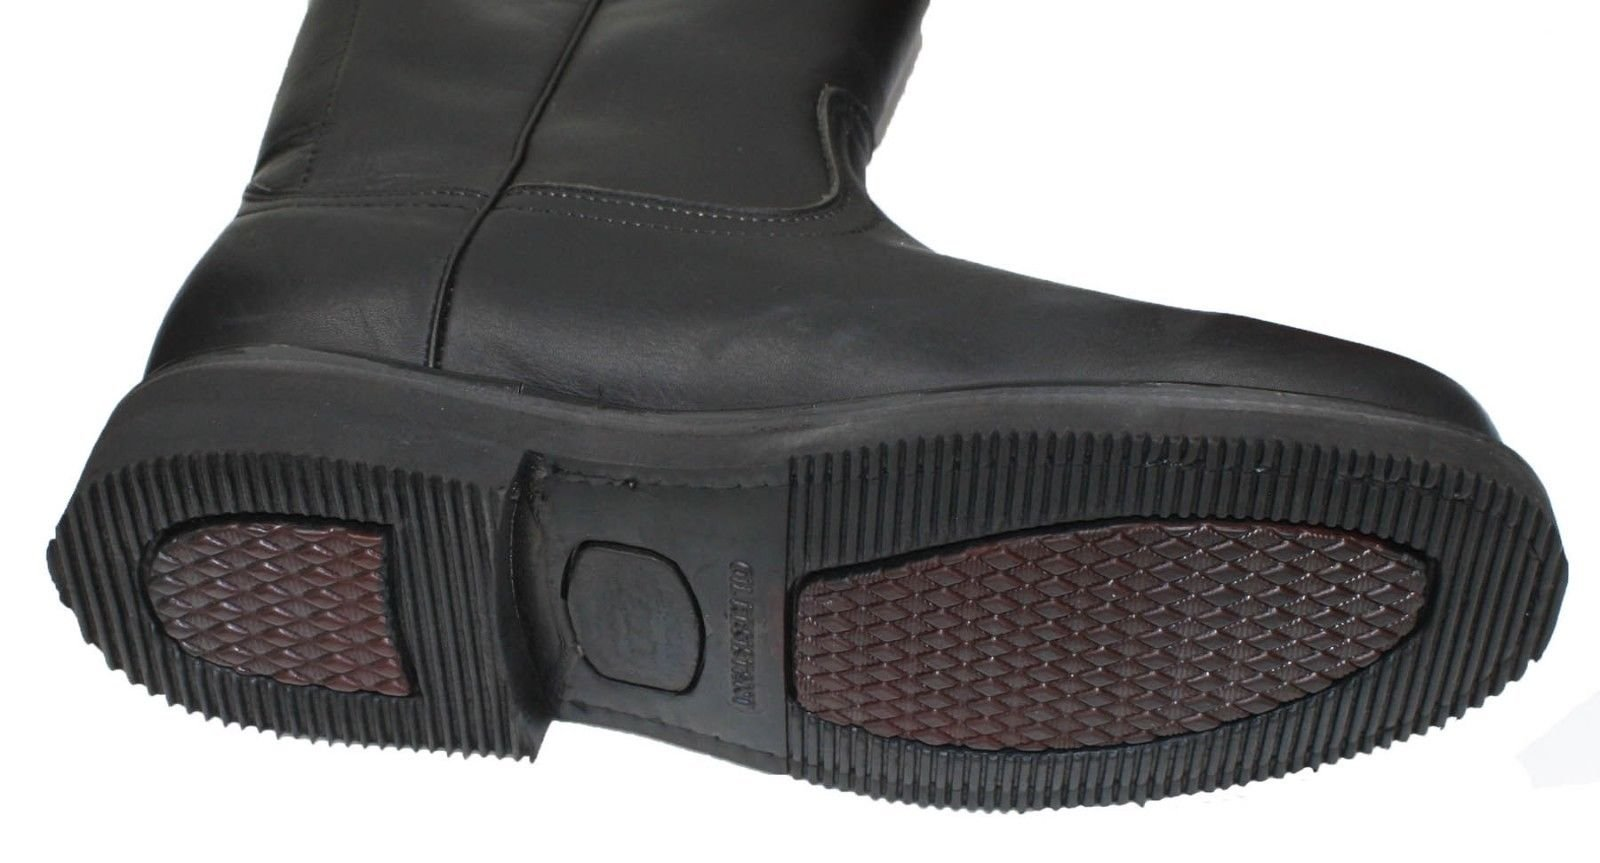 Dona Michi Men's Work Boots Pull On Leather Oil Water Slip Resistant Black 8.5 by Dona Michi (Image #2)